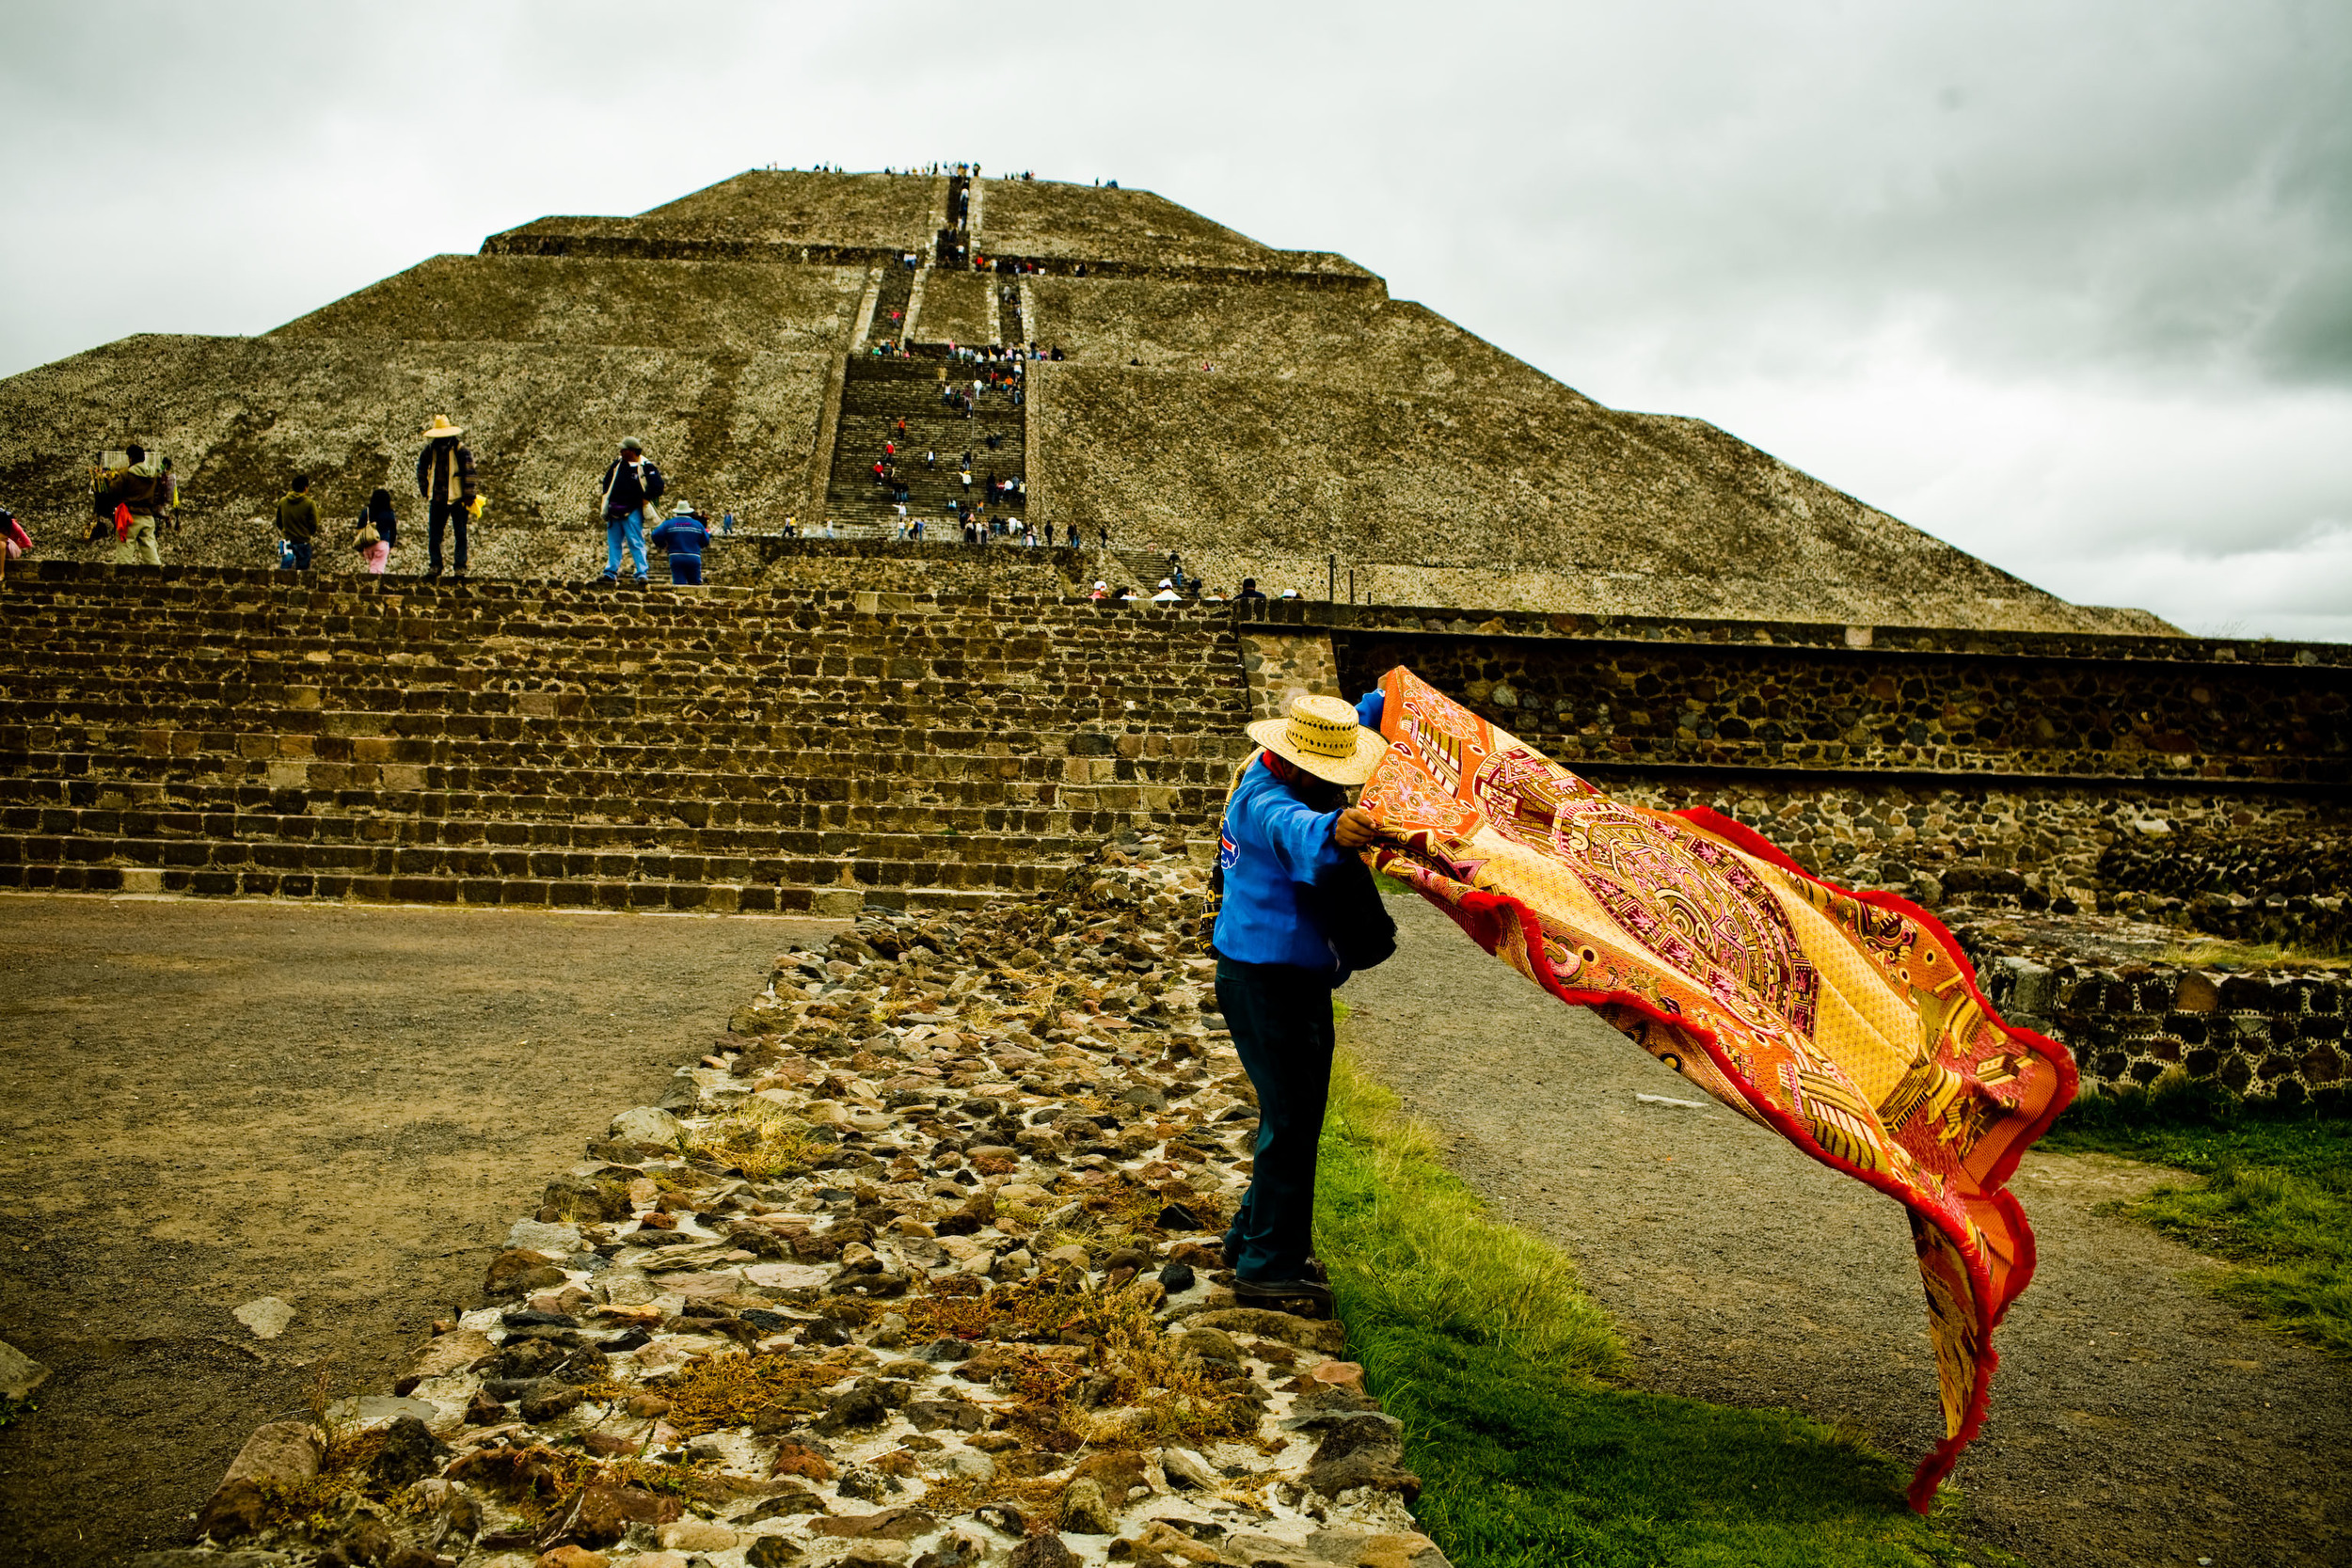 A man displays a rug for sale at the ruins of Teotihuacan, near Mexico City, Mexico.